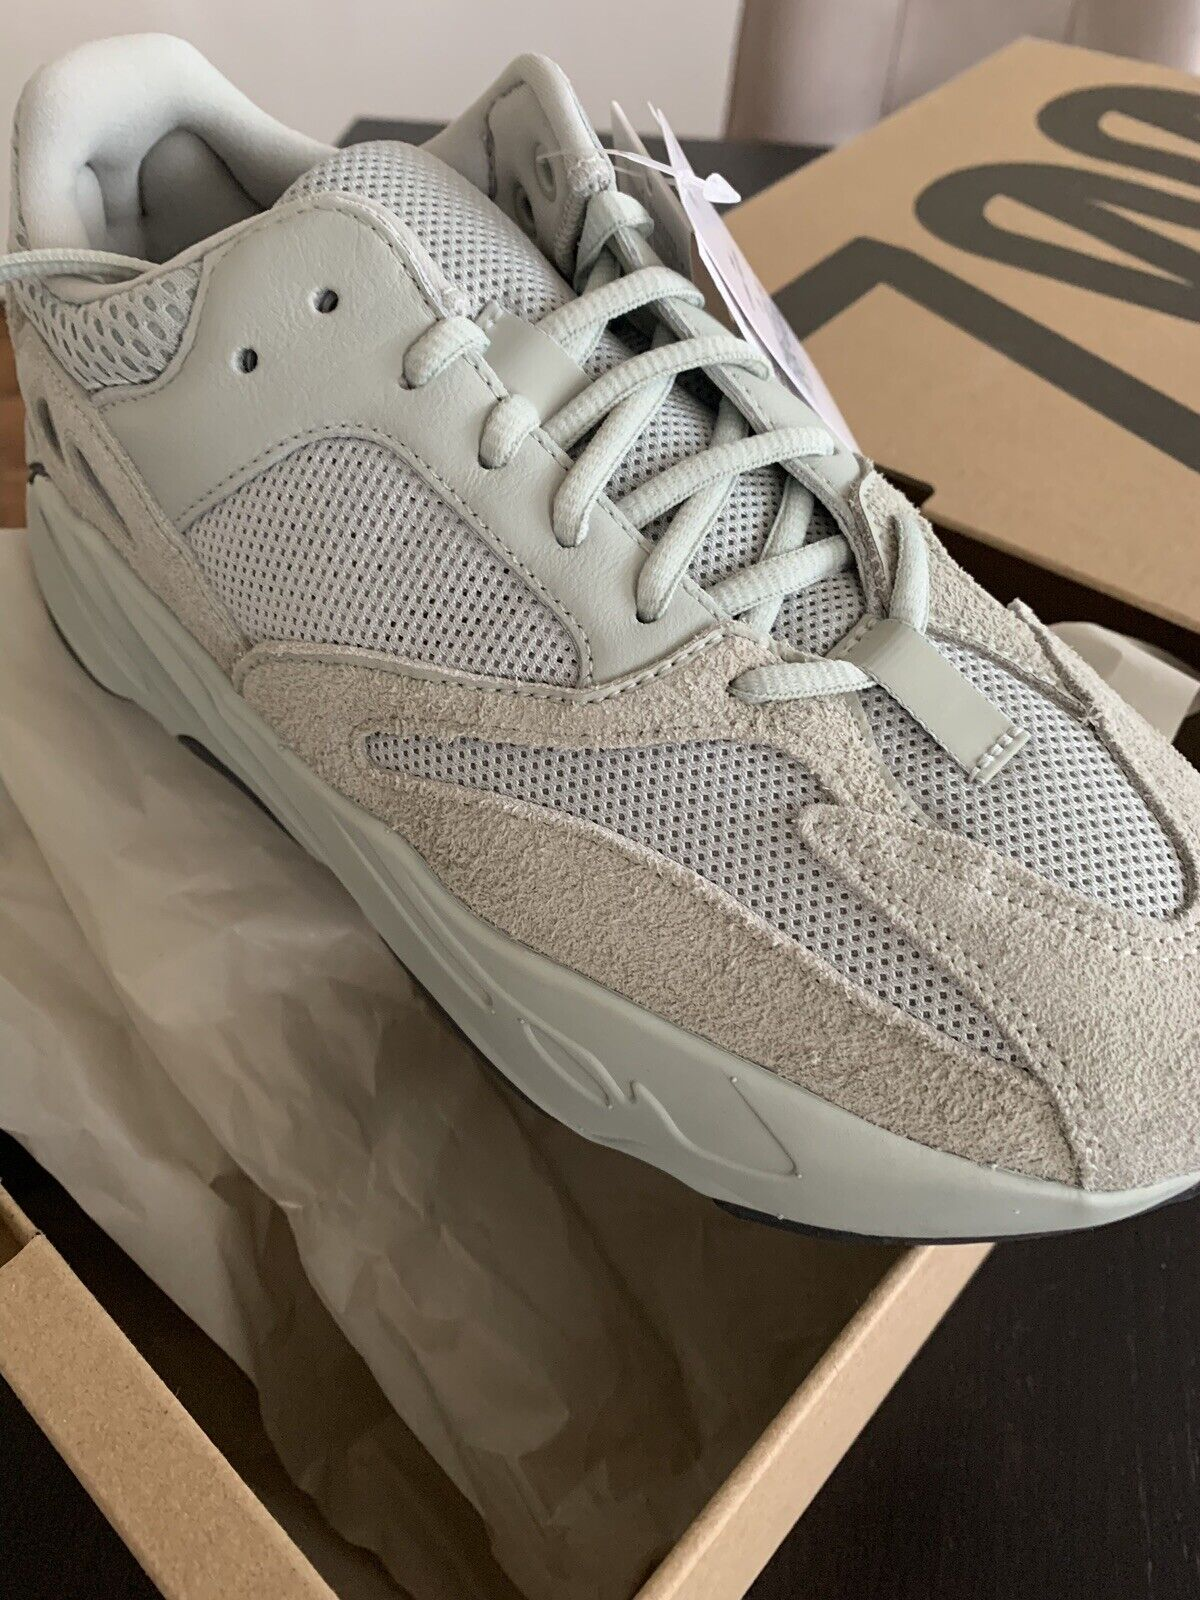 Adidas Yeezy Boost 700 Salt EU 42 US 8.5